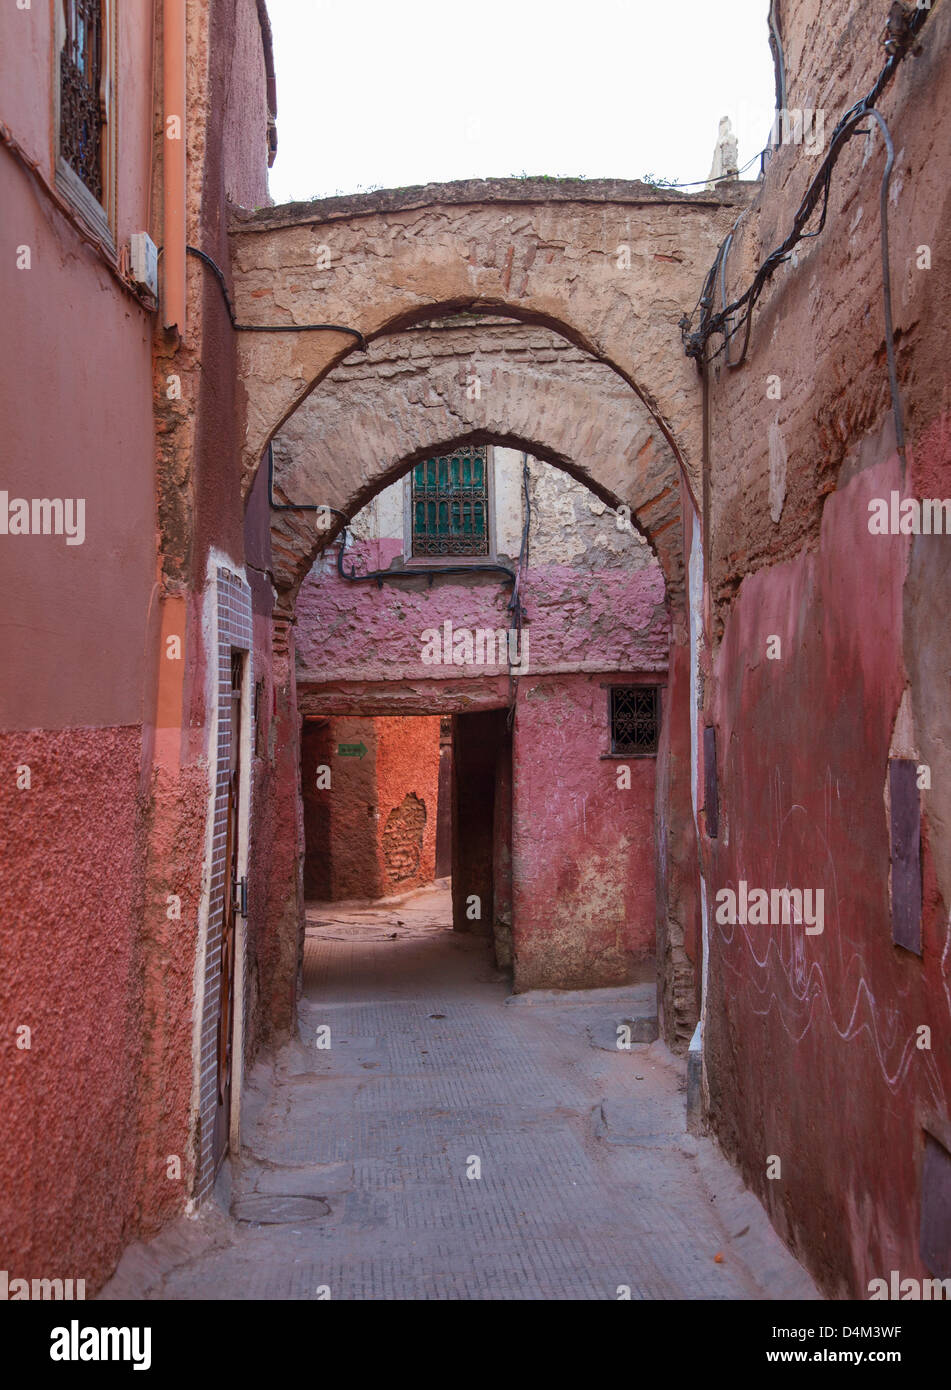 Arches in village alleyway - Stock Image